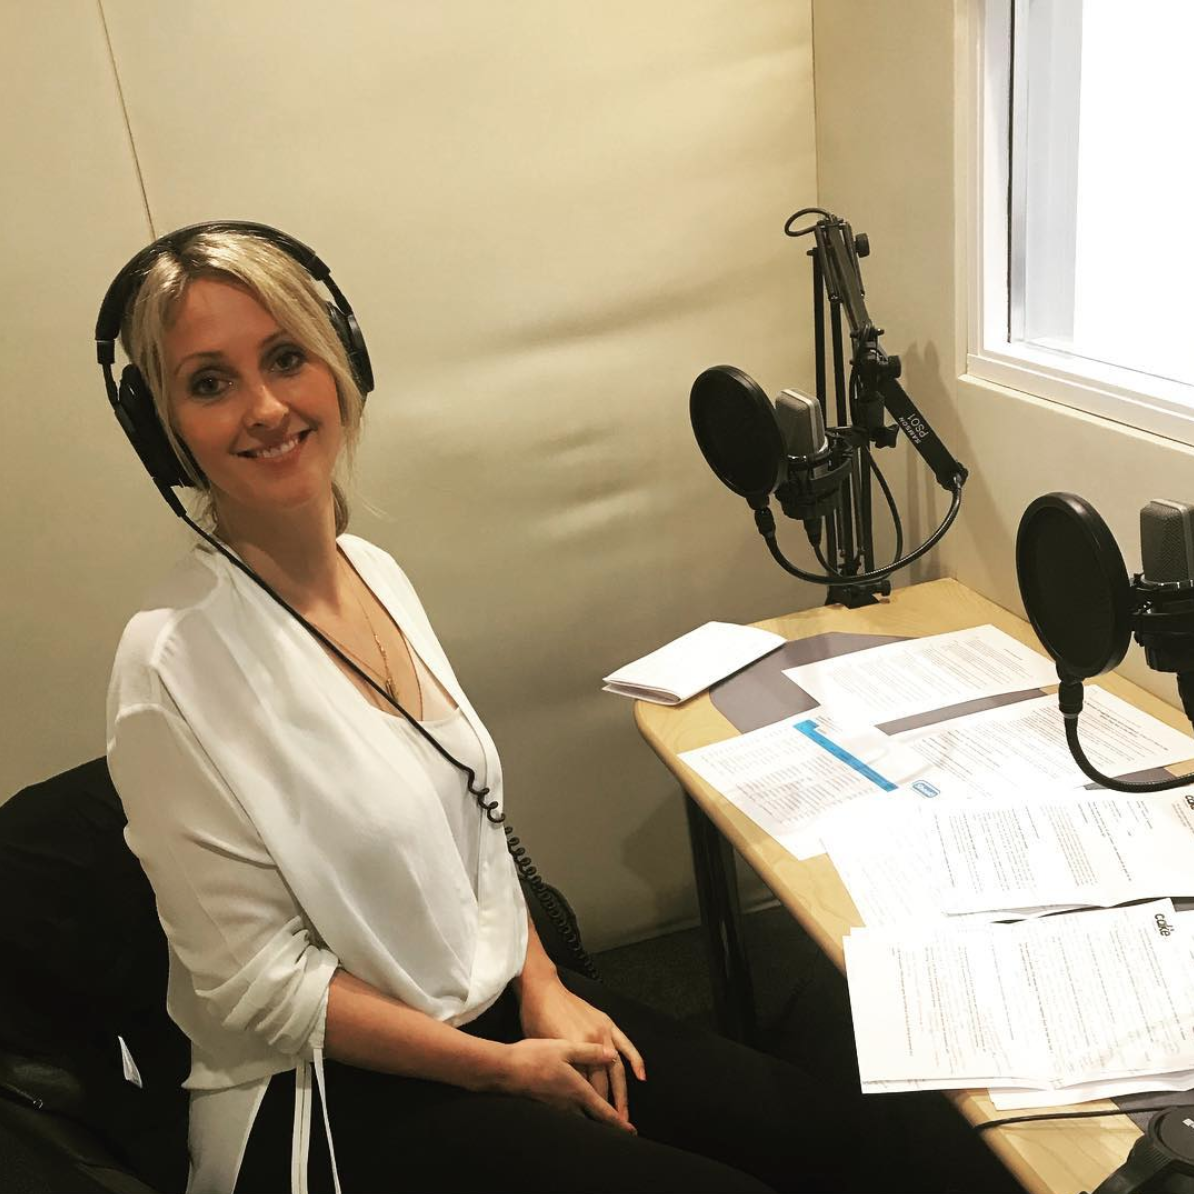 Nikki held a day of radio interviews as part of the E45 'Straight Up Skincare' Campaign, sharing devastating research which found that only 27% of women feel confident and over half of women don't like what they see when they look in the mirror and simple steps women can take to feel more confident in their bodies.